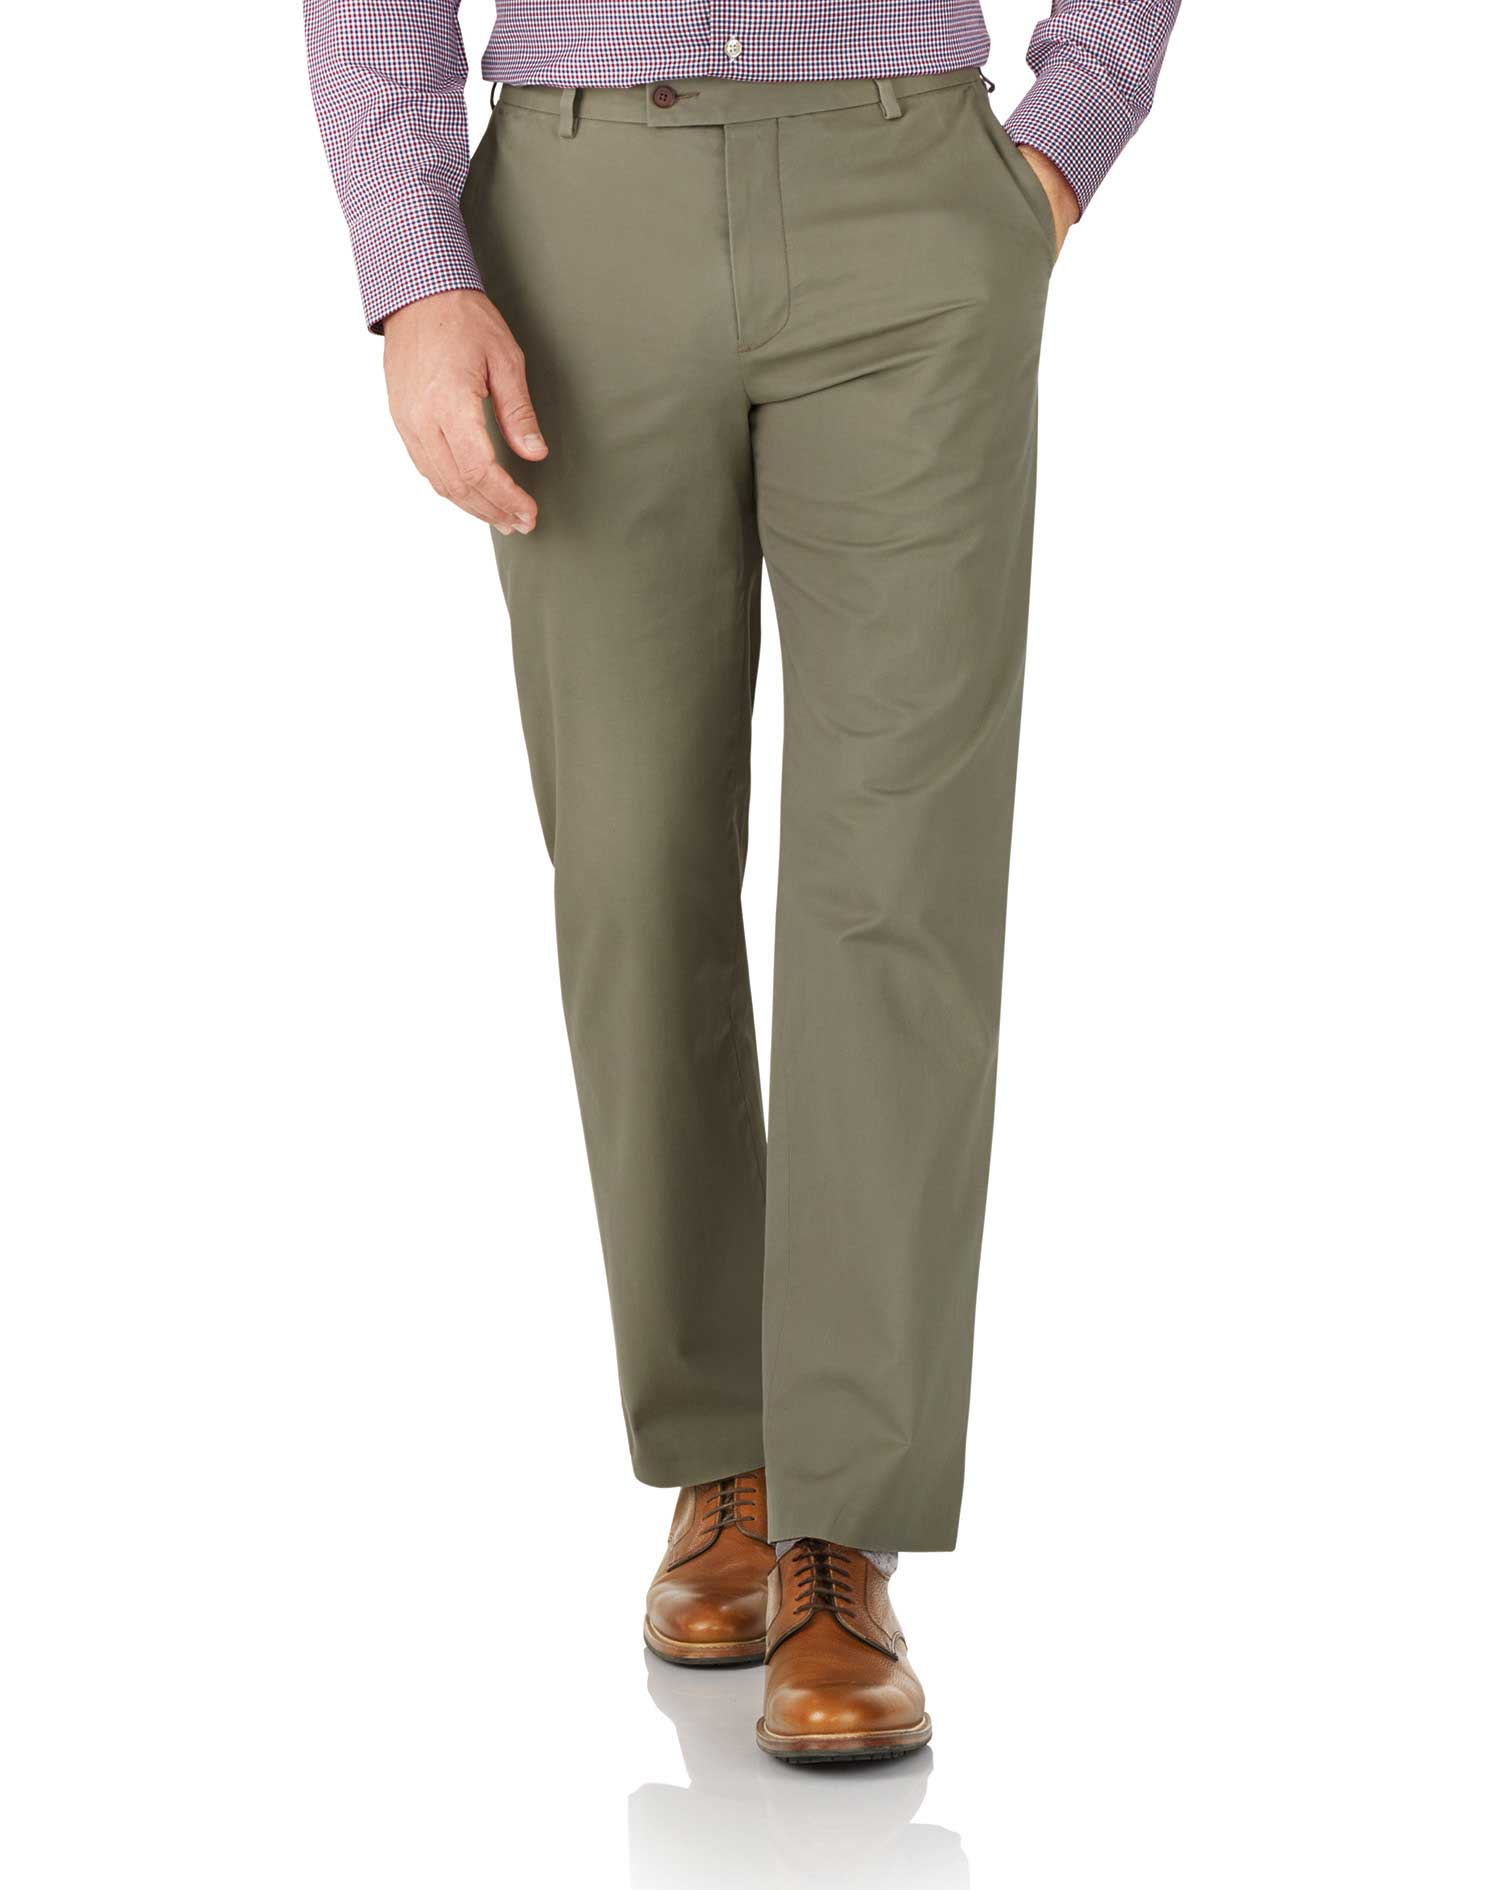 Khaki Classic Fit Stretch Cotton Chino Trousers Size W40 L32 by Charles Tyrwhitt